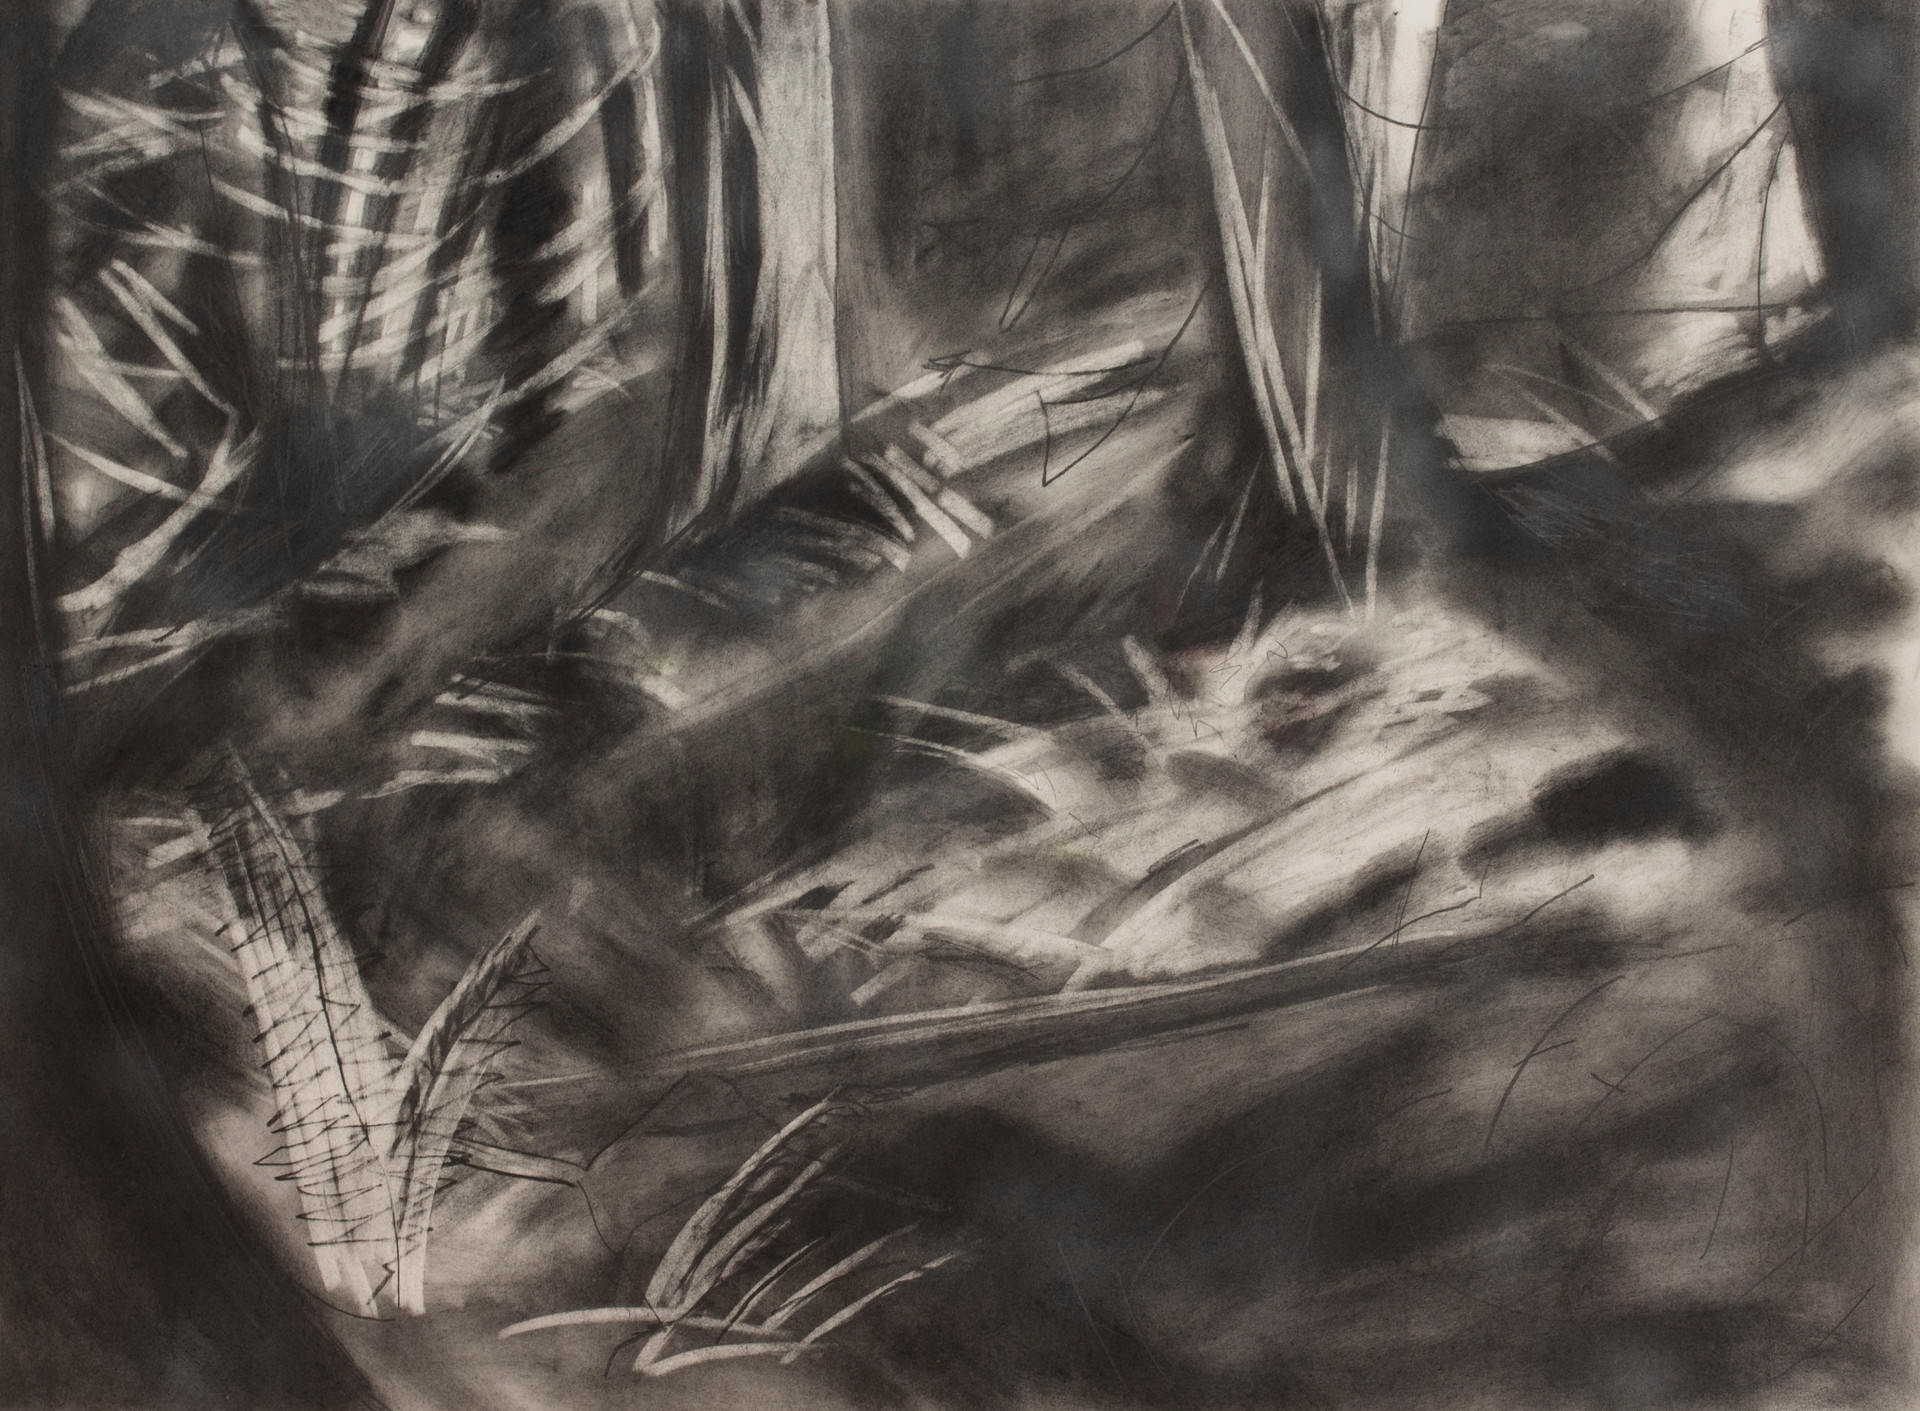 Forest 1, 2019, graphite on paper, 30x 22